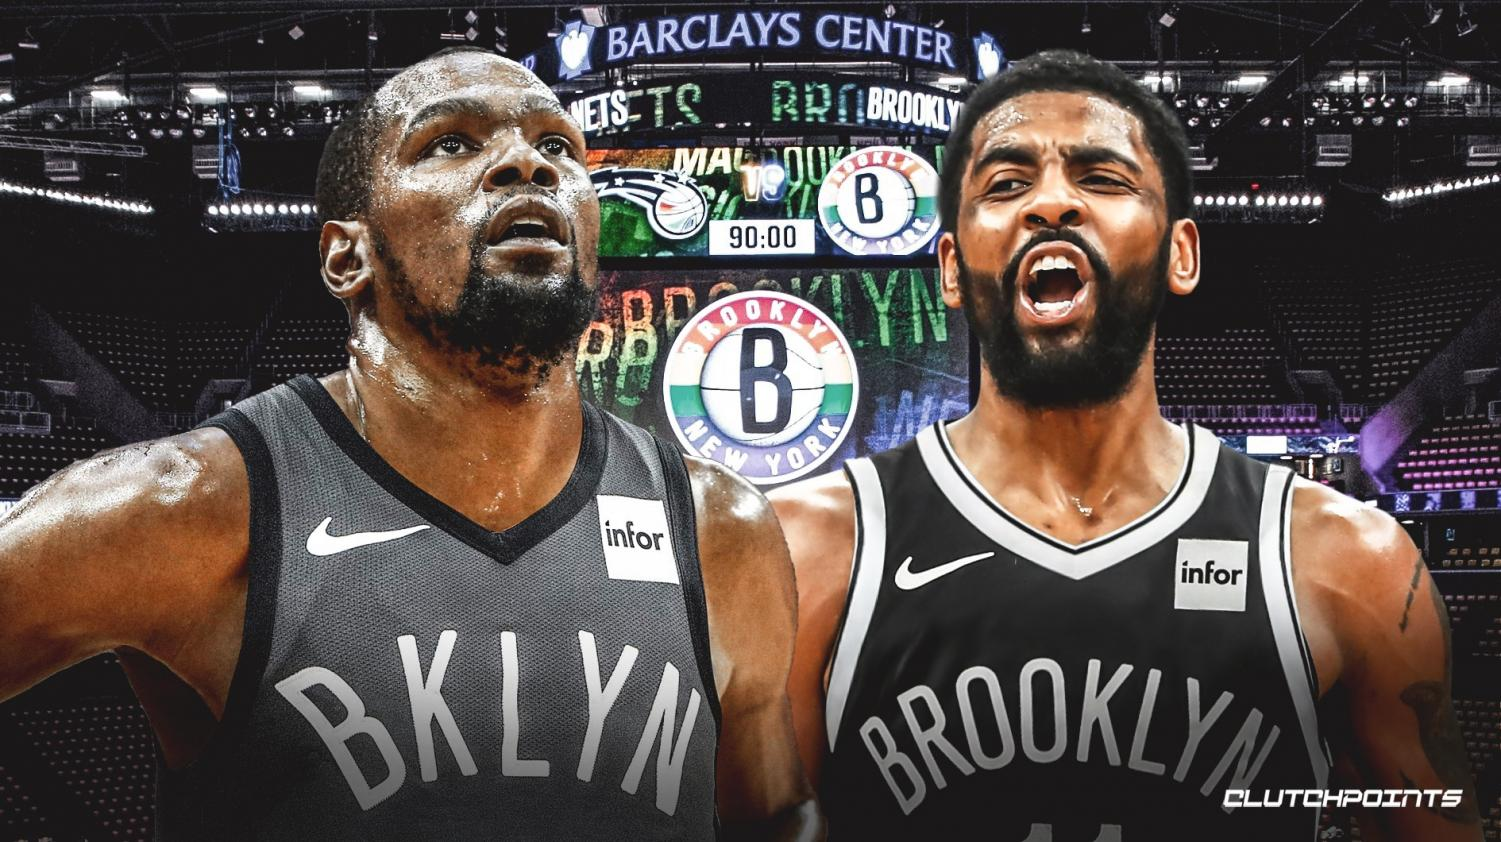 Kevin Durant (left) and Kyrie Irving (right) both ready to take on the new season with the Brooklyn Nets.